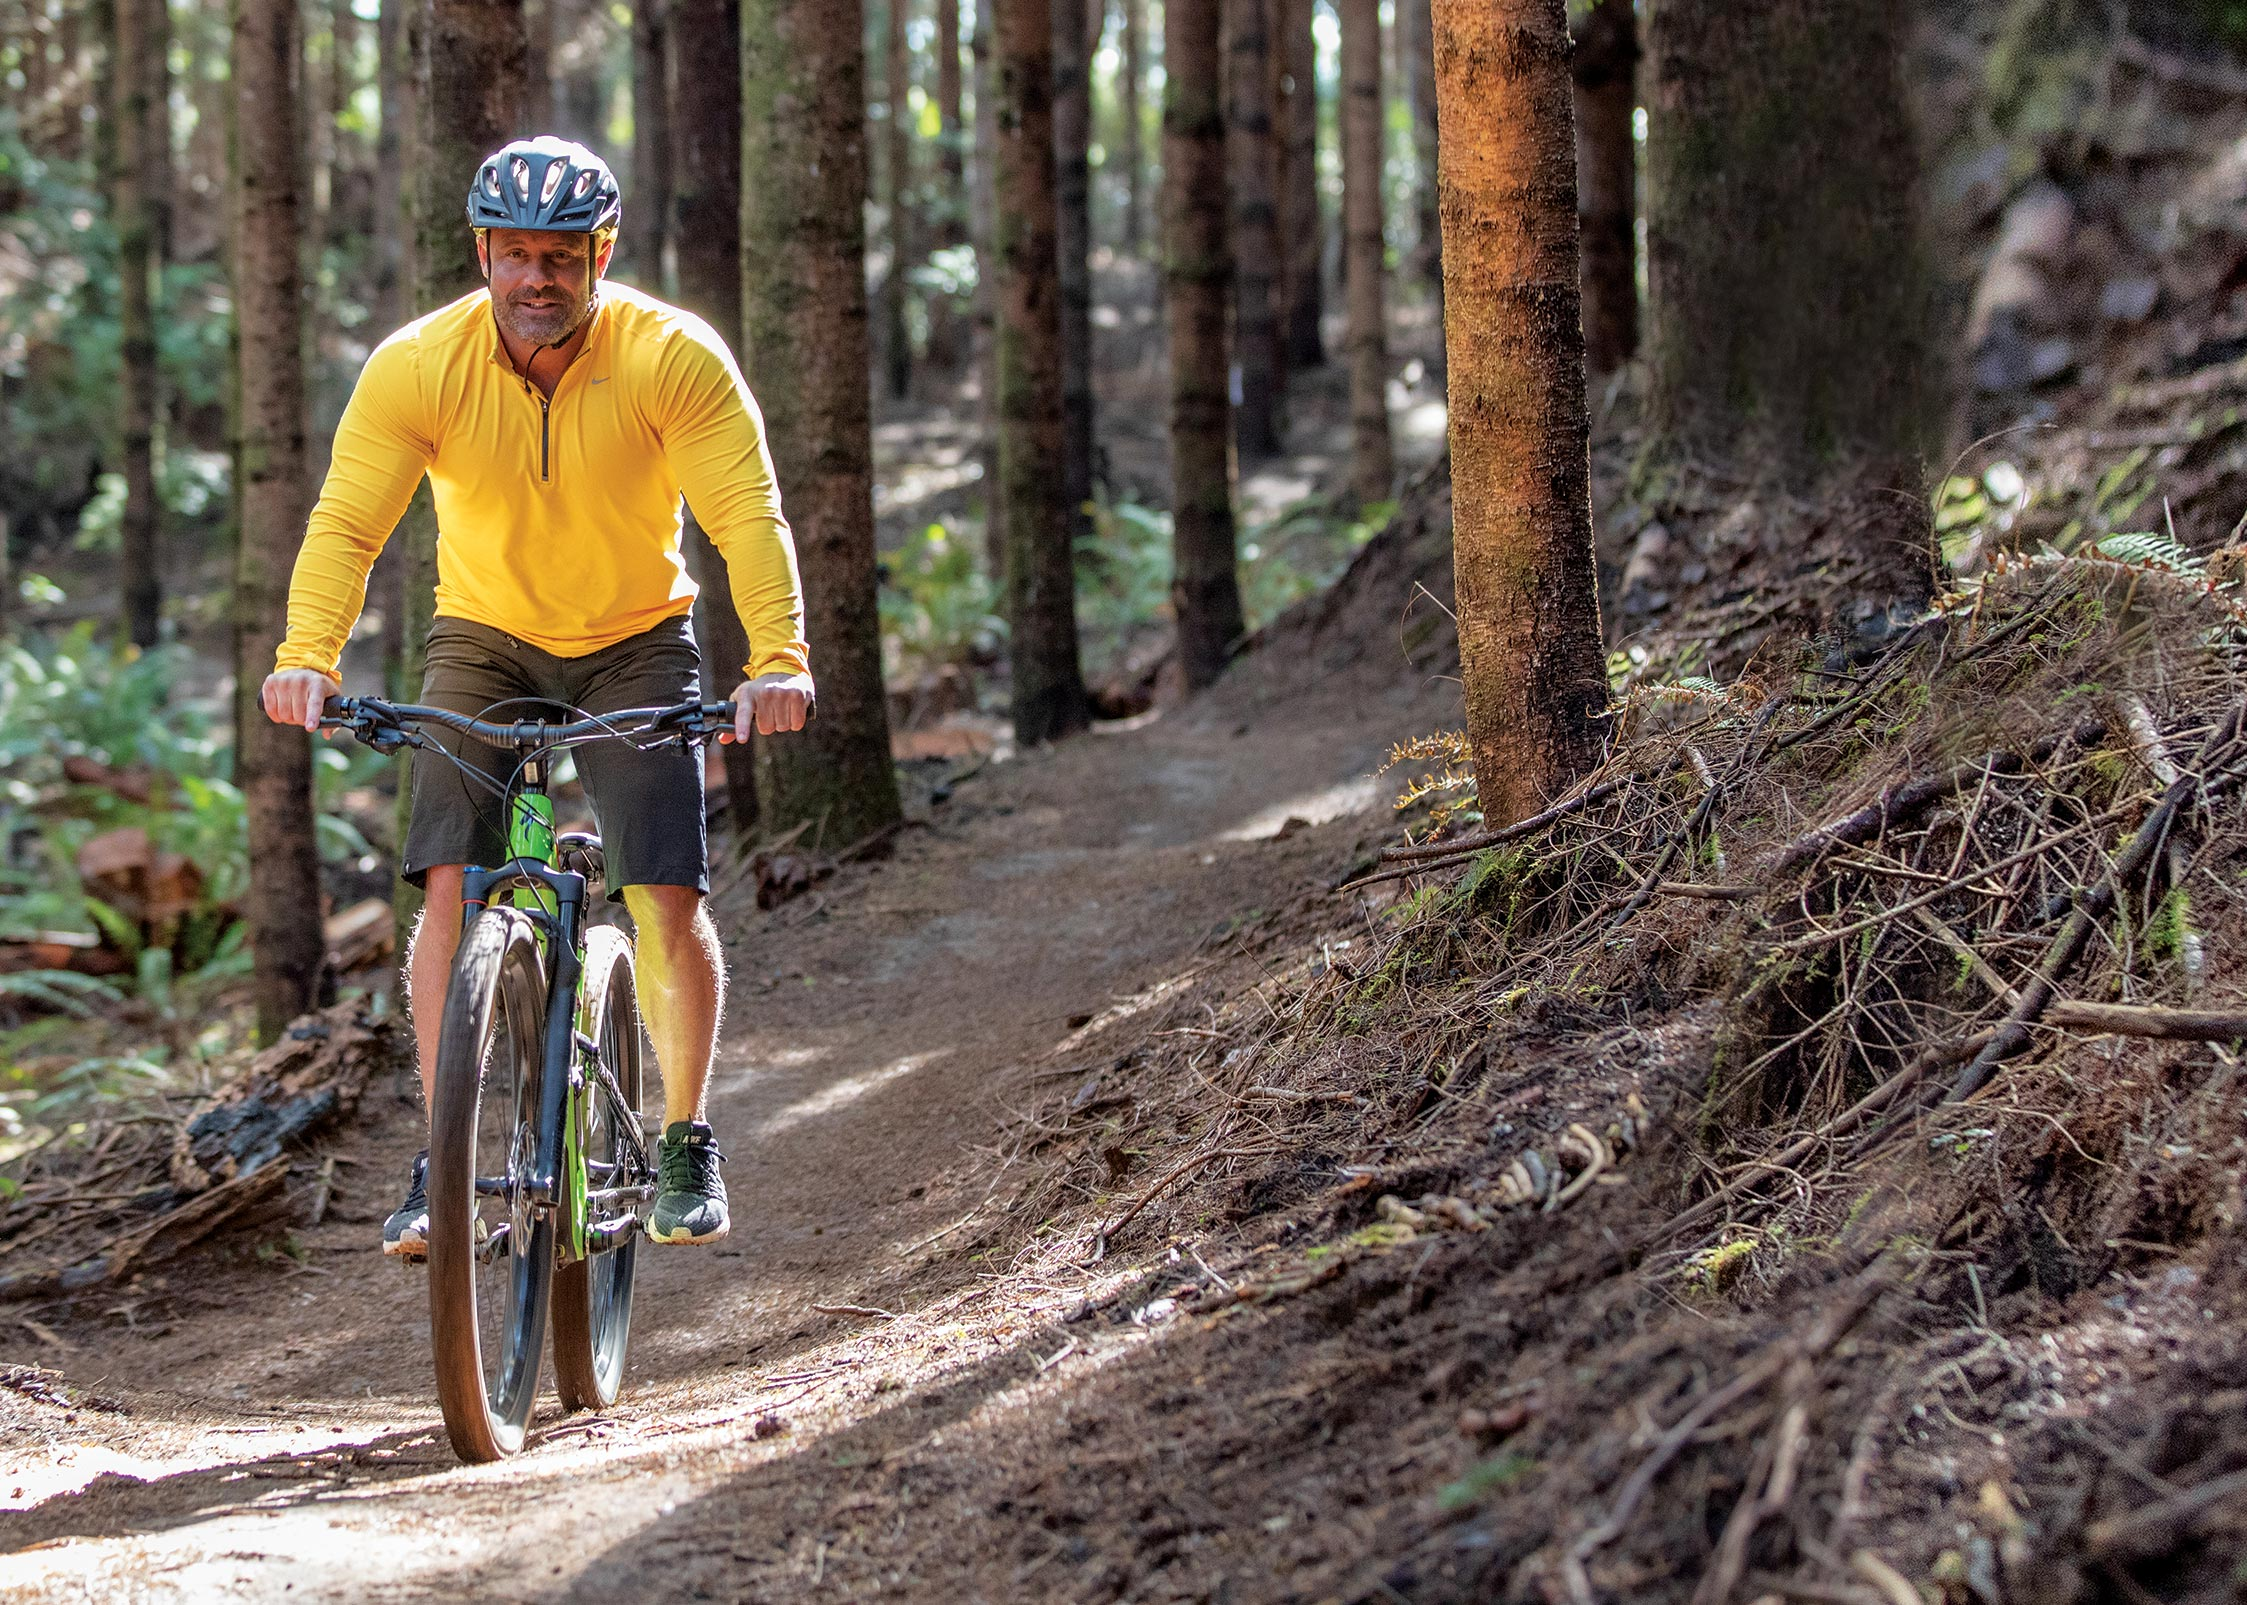 A man in yellow shirt rides bike down a wooded trail.